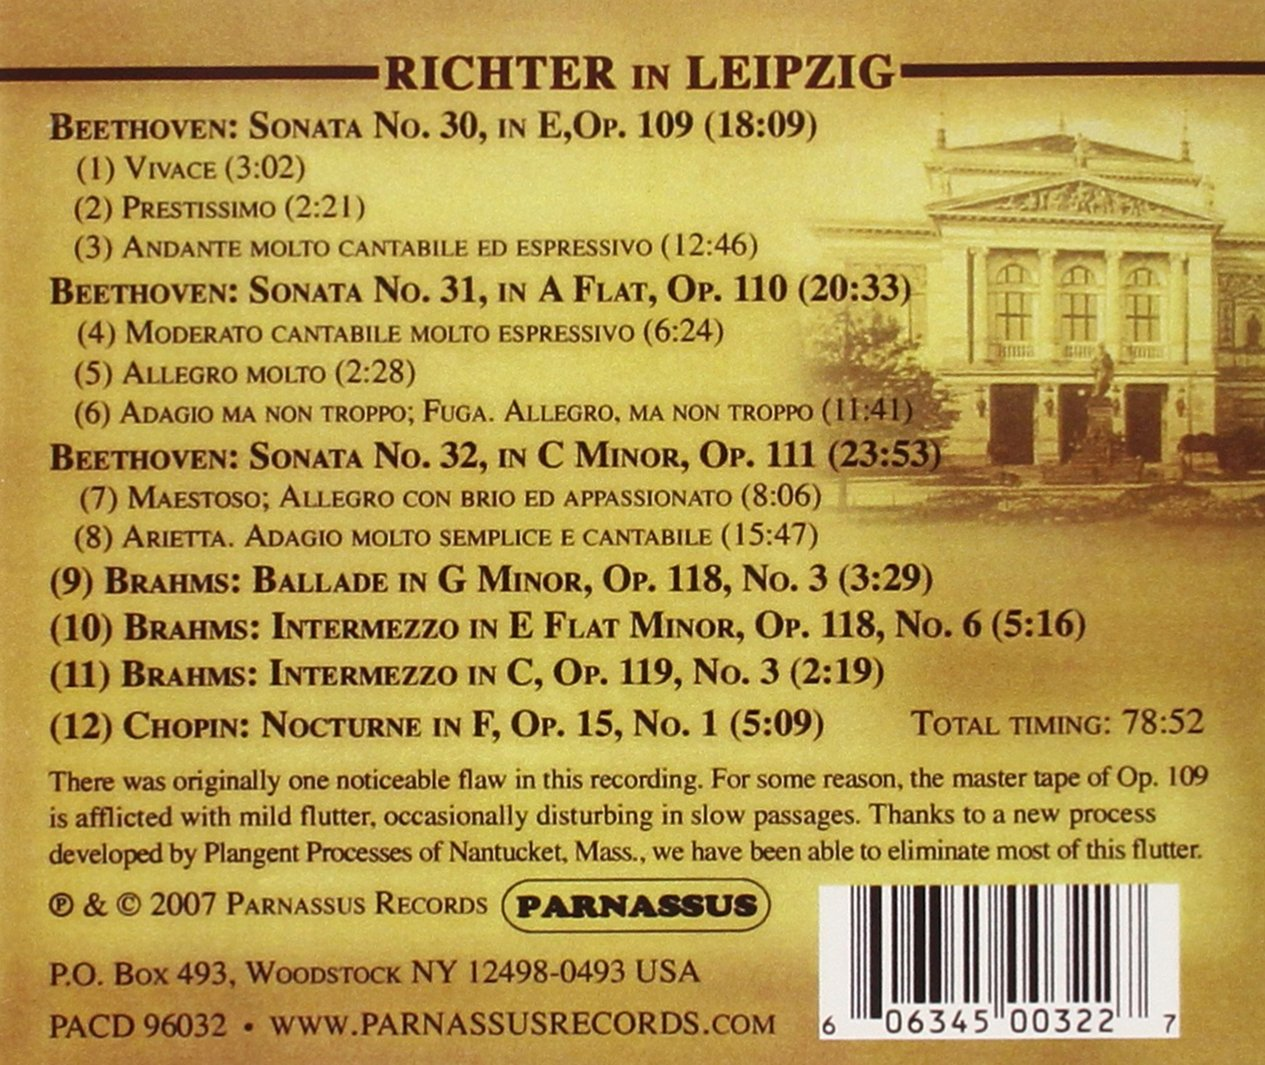 Richter in Leipzig - Beethoven: Piano Sonatas Nos. 30- 32, Opp. 109- 111 (November 28, 1963) by Parnassus